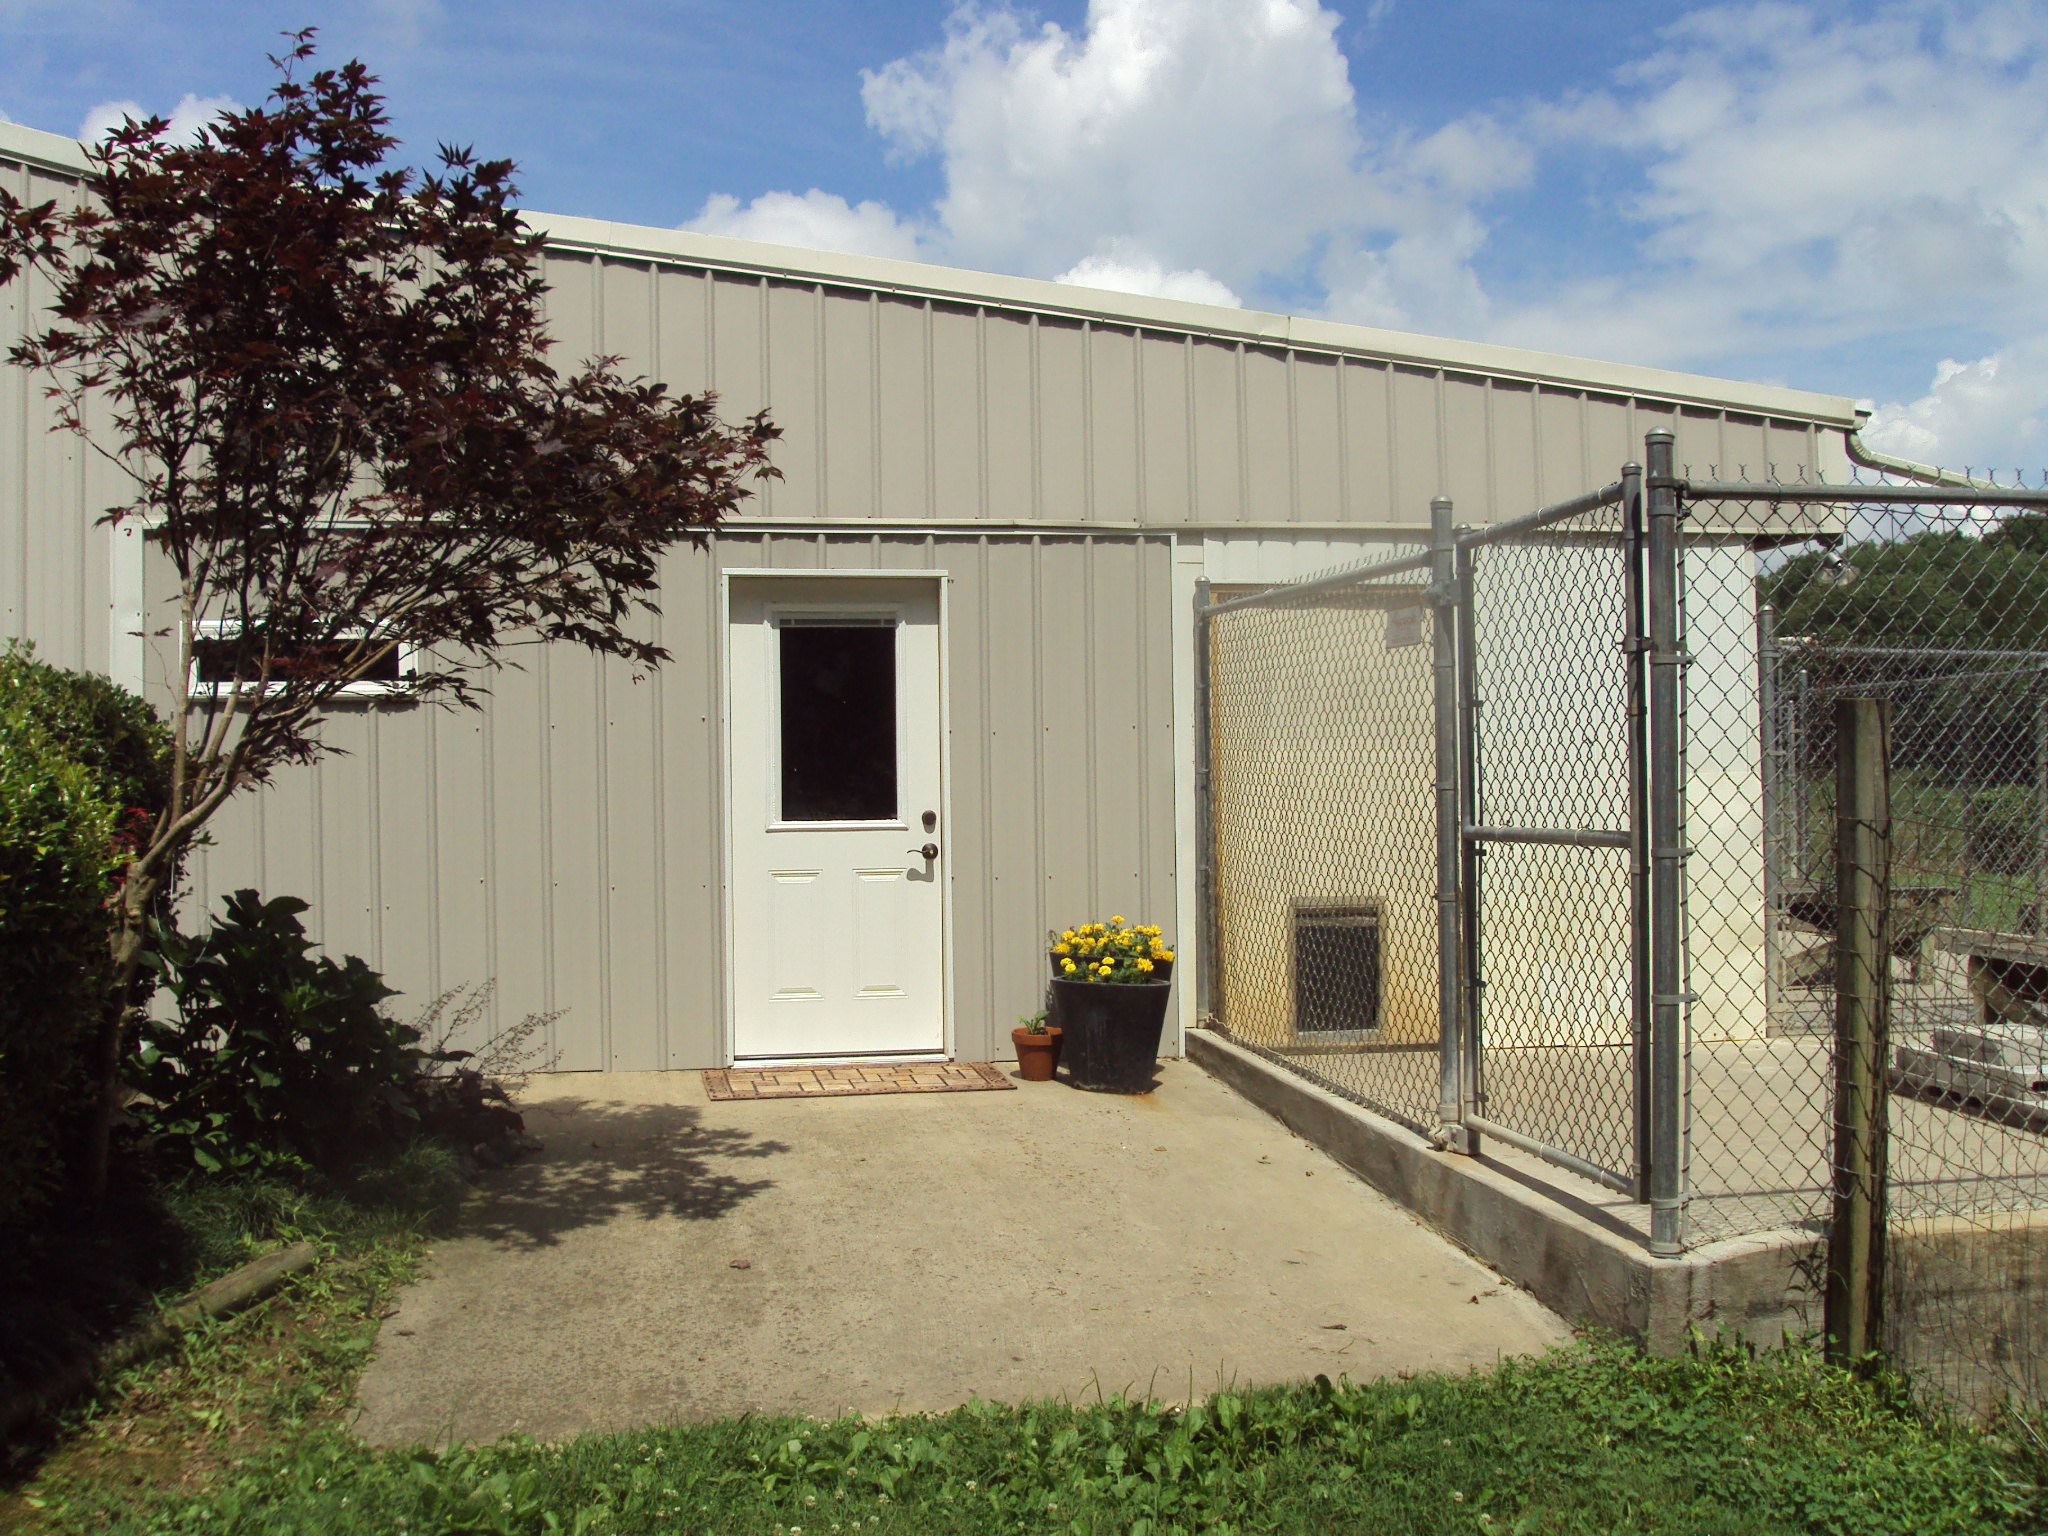 Beech Grove Stable and Kennels image 2